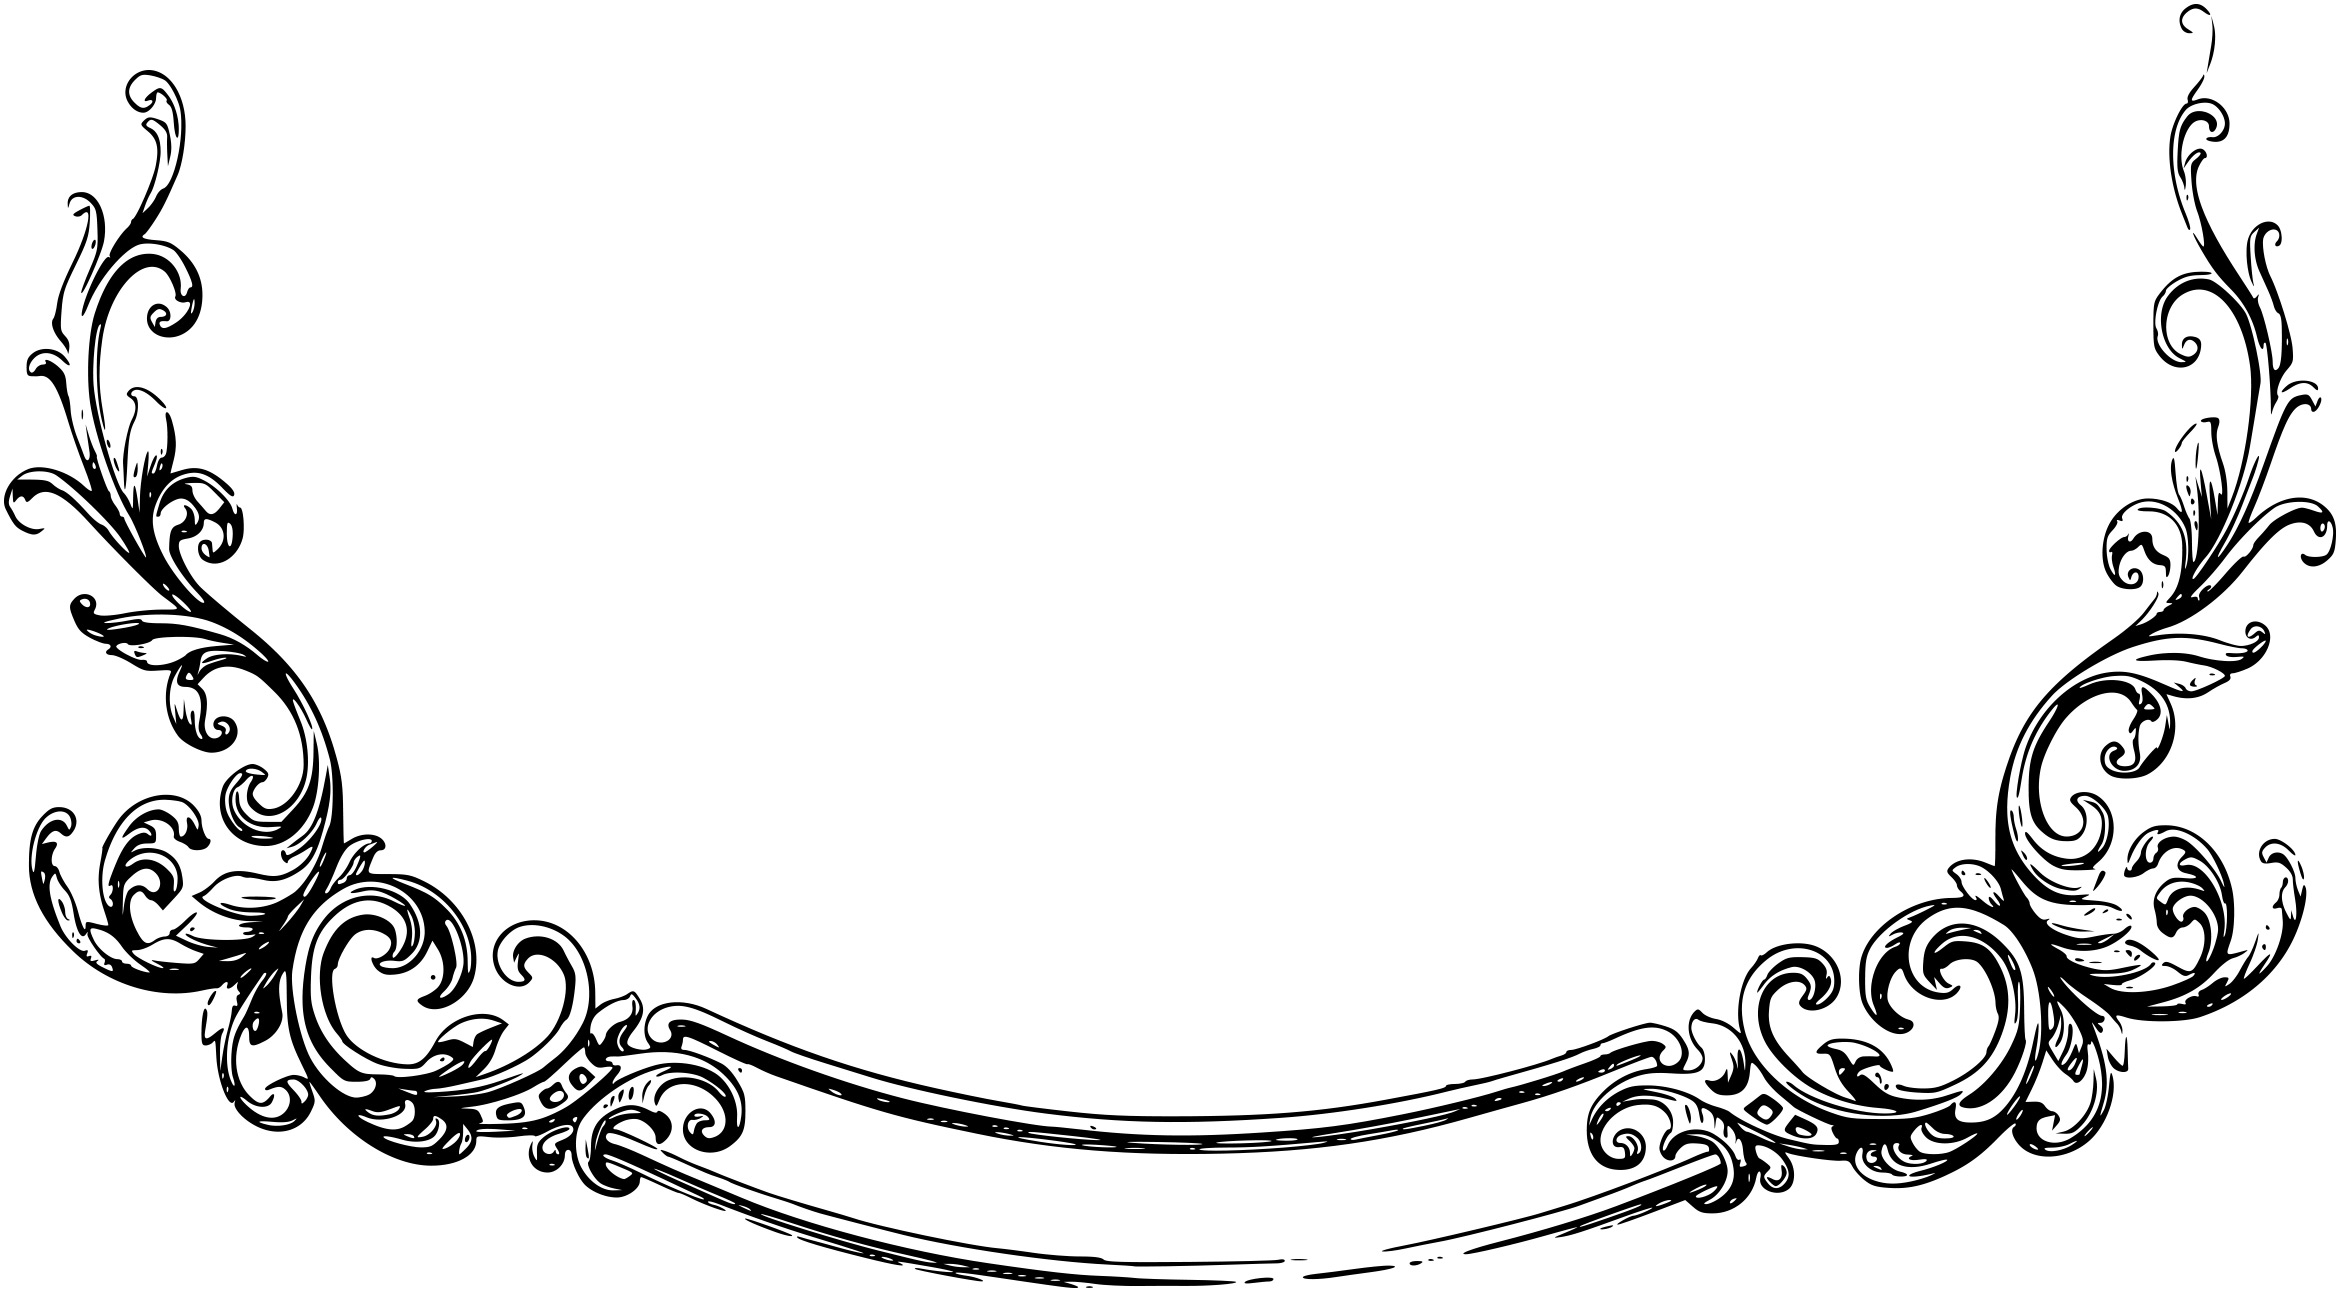 Free Christian Scroll Cliparts, Download Free Clip Art, Free.